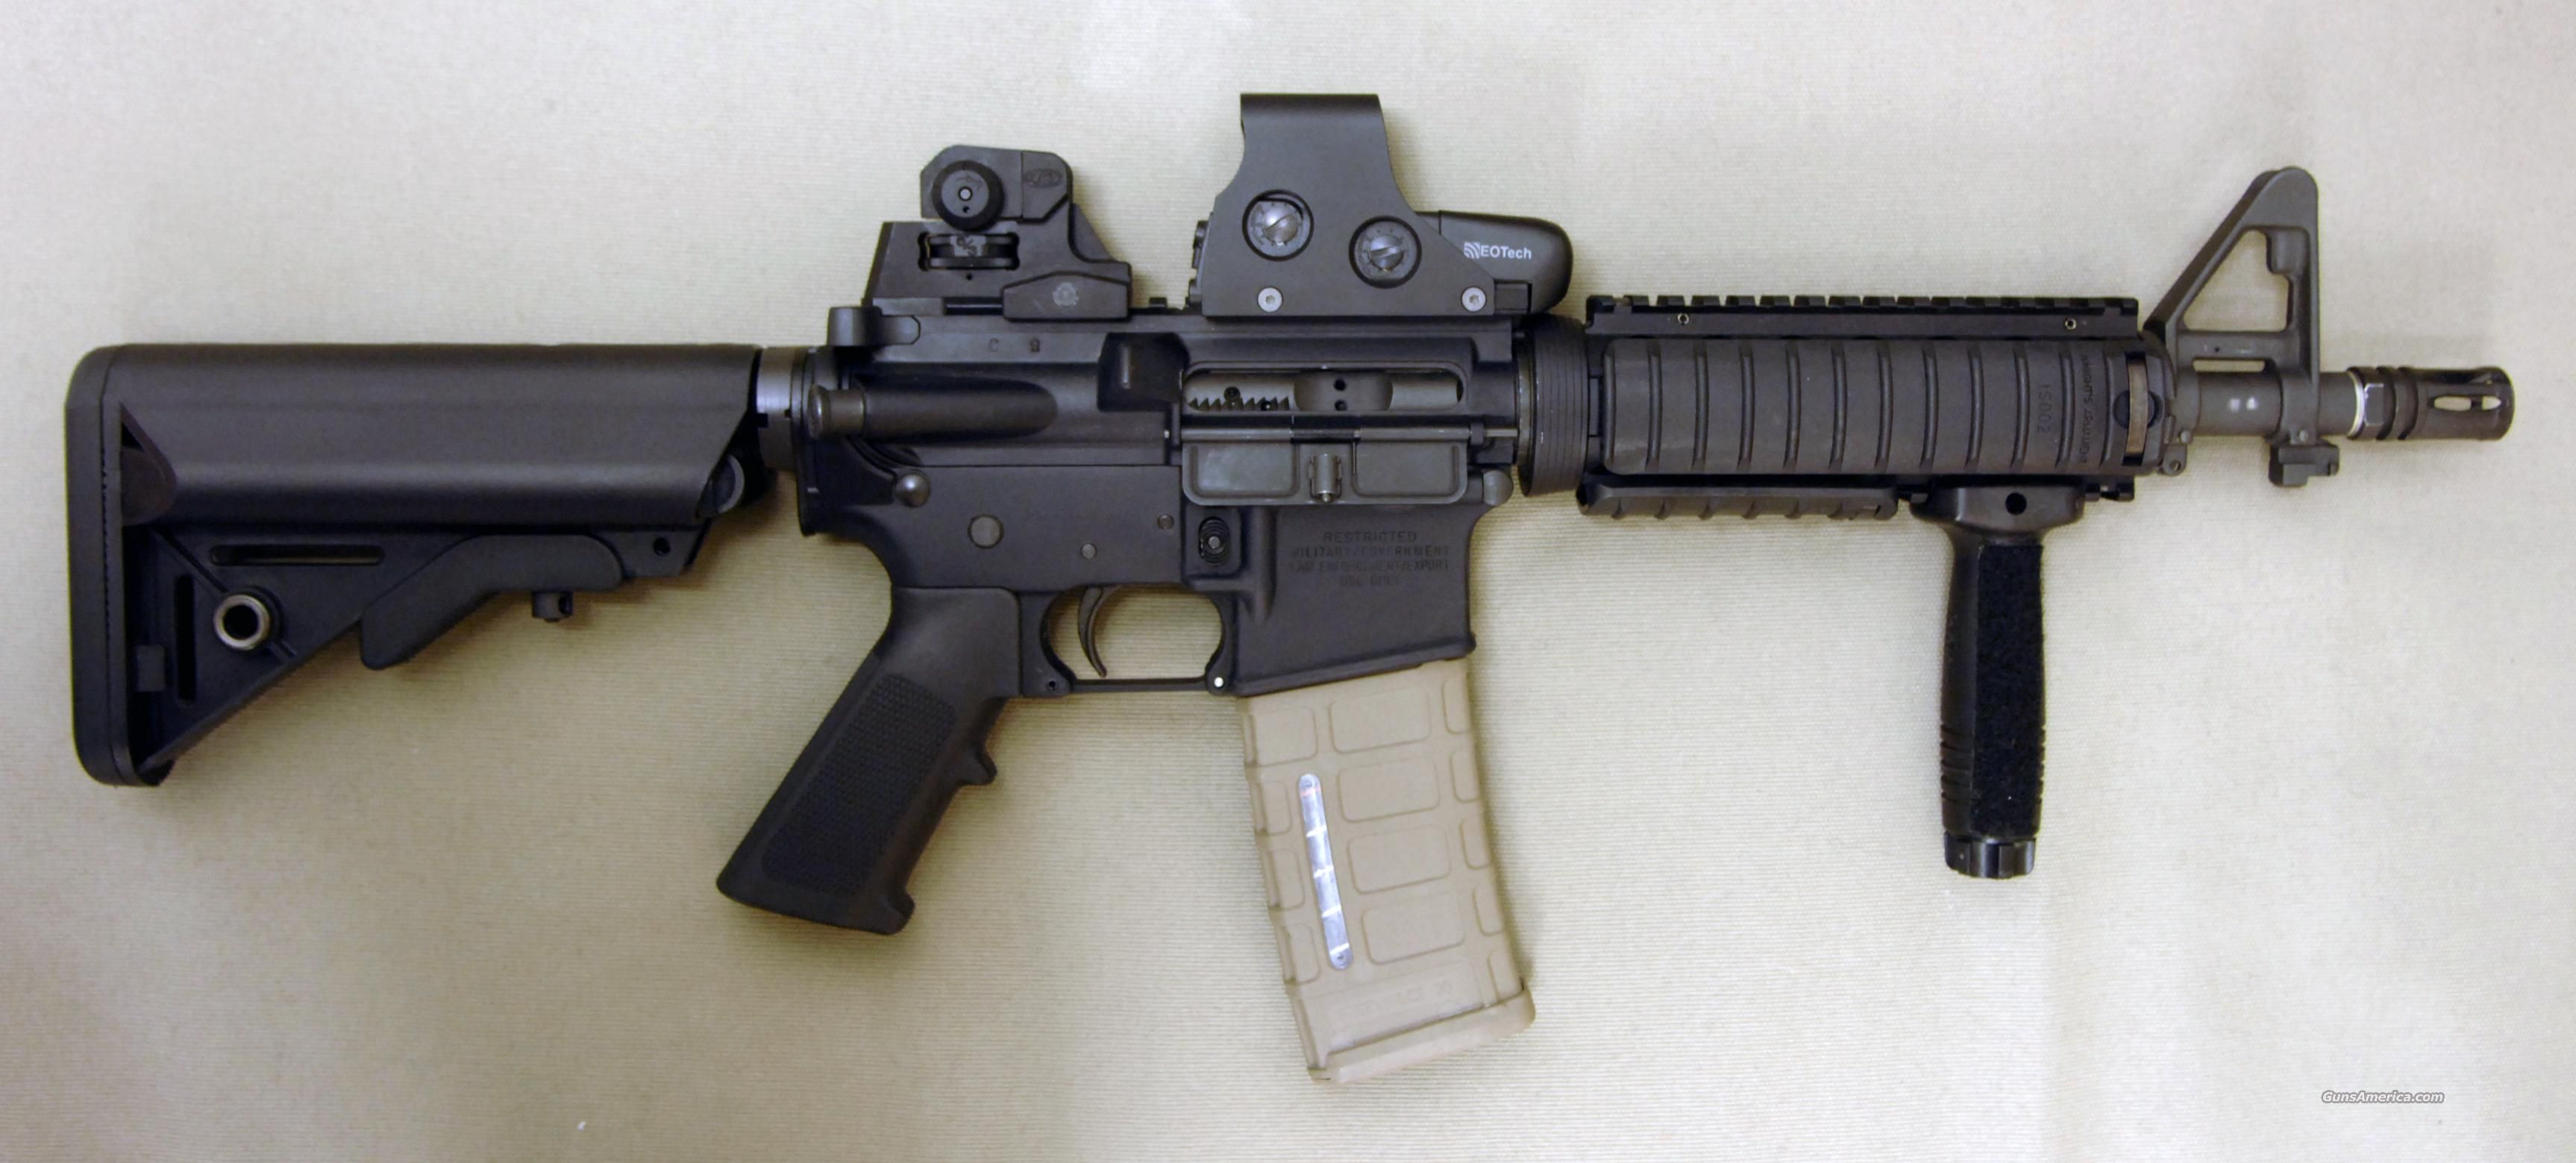 Pin by Jacque on Guns | Guns, Firearms, Military police